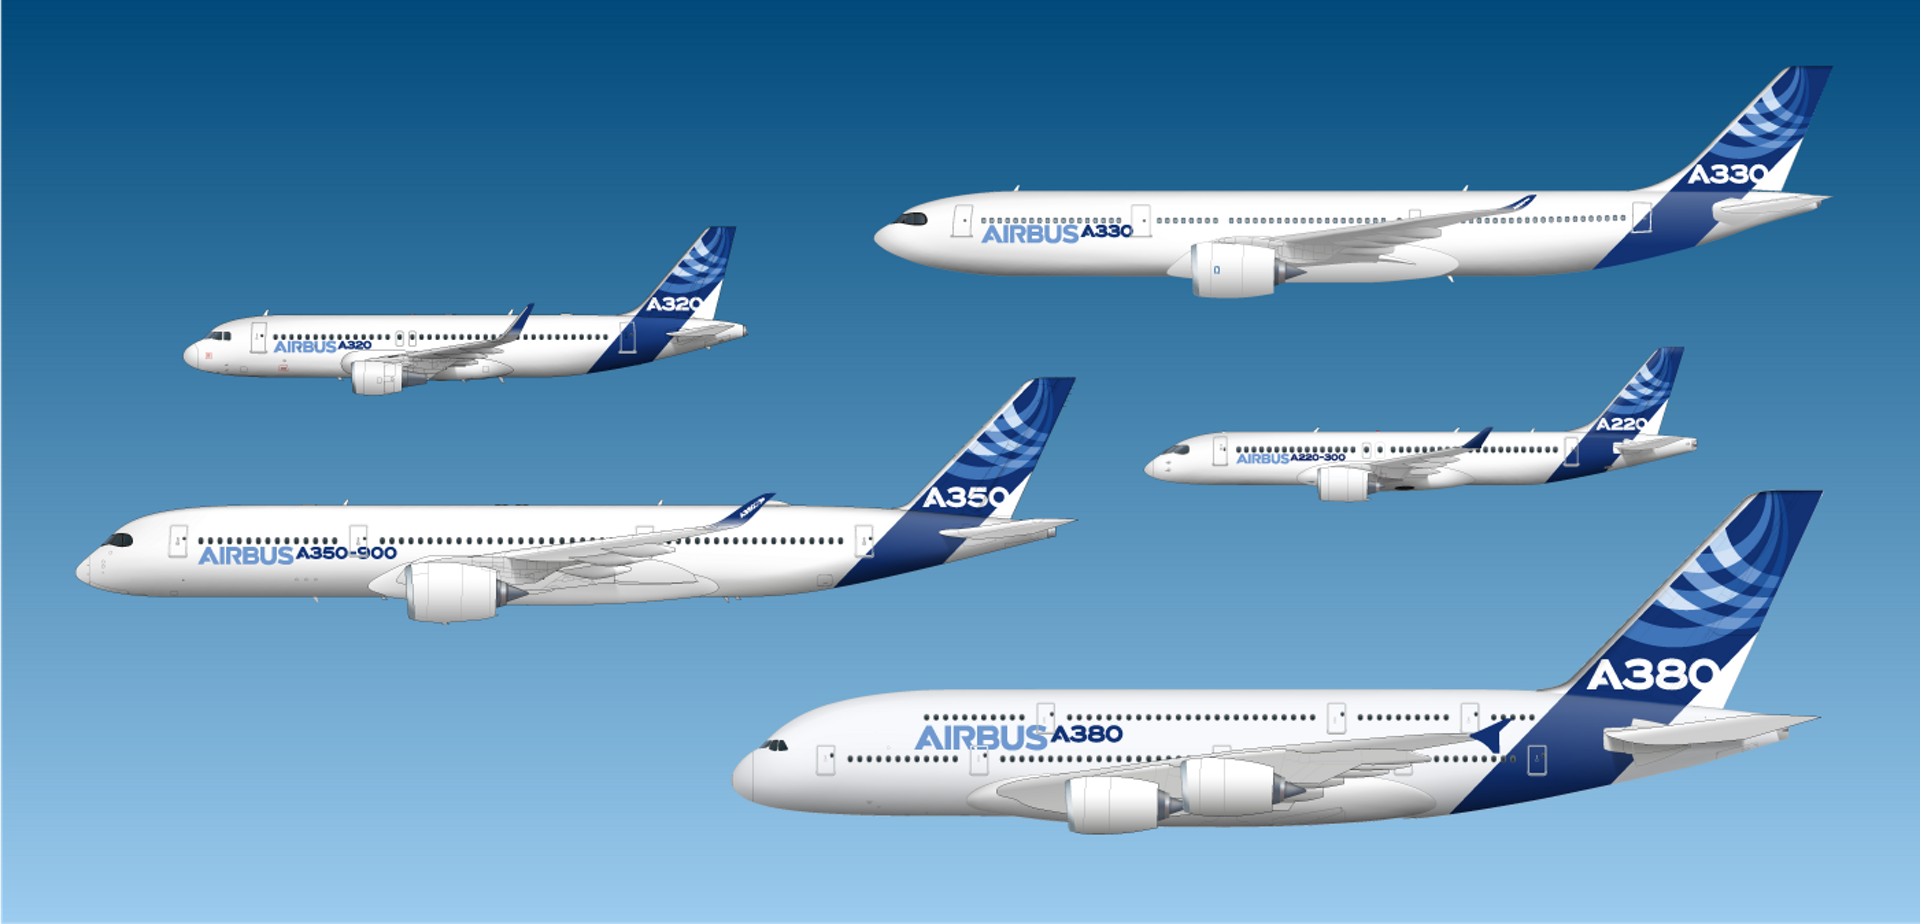 Aircraft Livery Overview